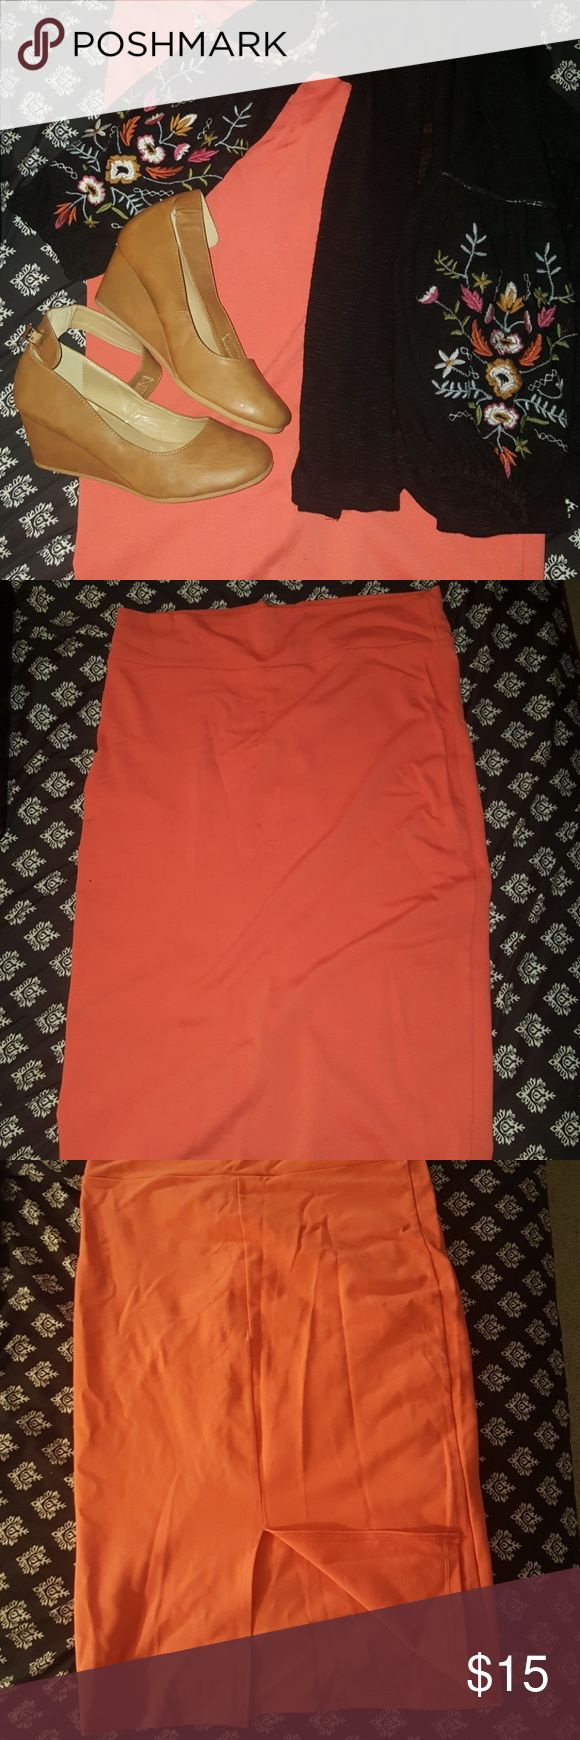 2X coral pencil skirt EUC Stunning 2x Coral pencil skirt with back slit. Thick waistband and stretchy material. Would make a great addition to any closet, bright fun fashionable color. Can be worn as a long knee length pencil skirt, or pulled up for a shorter look. Can also be worn as a tube top. Classy enough for the office but sexy enough for date night. Excellent used condition, like new.  * listing is for pencil skirt only, and does not include shoes necklace or sweater which were used…